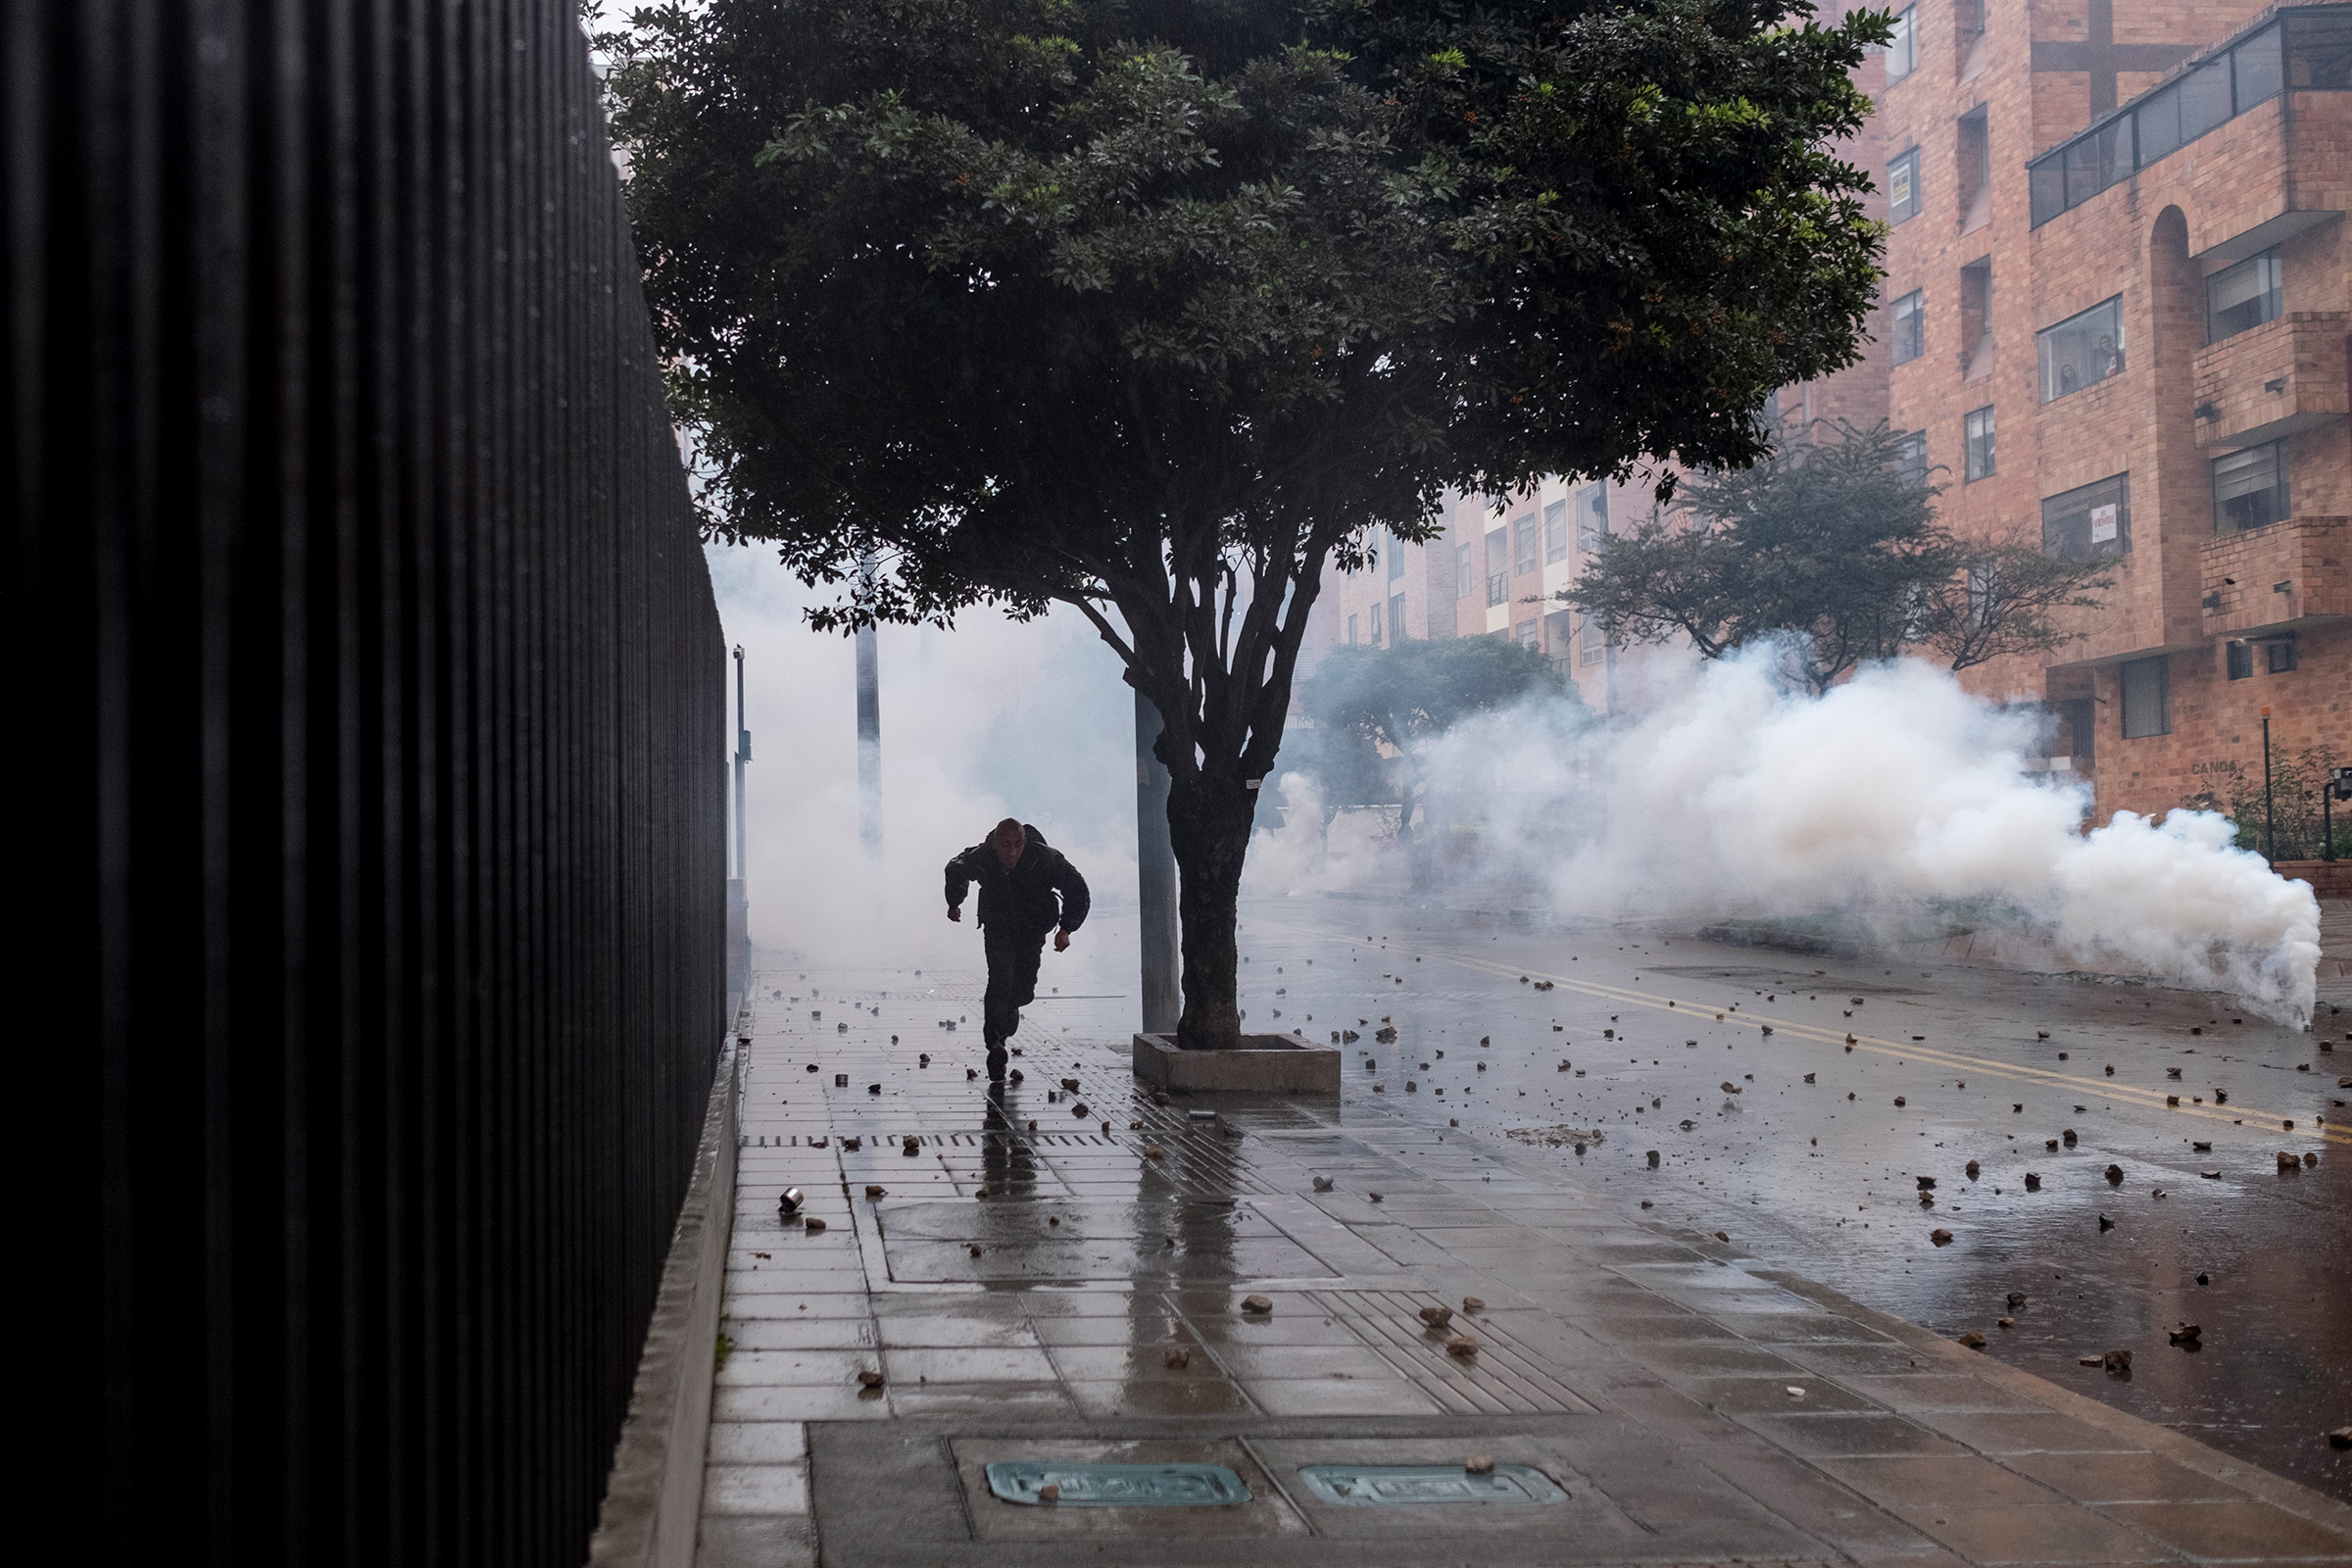 A protester flees tear gas used by the police in northern Bogotá on May 1.